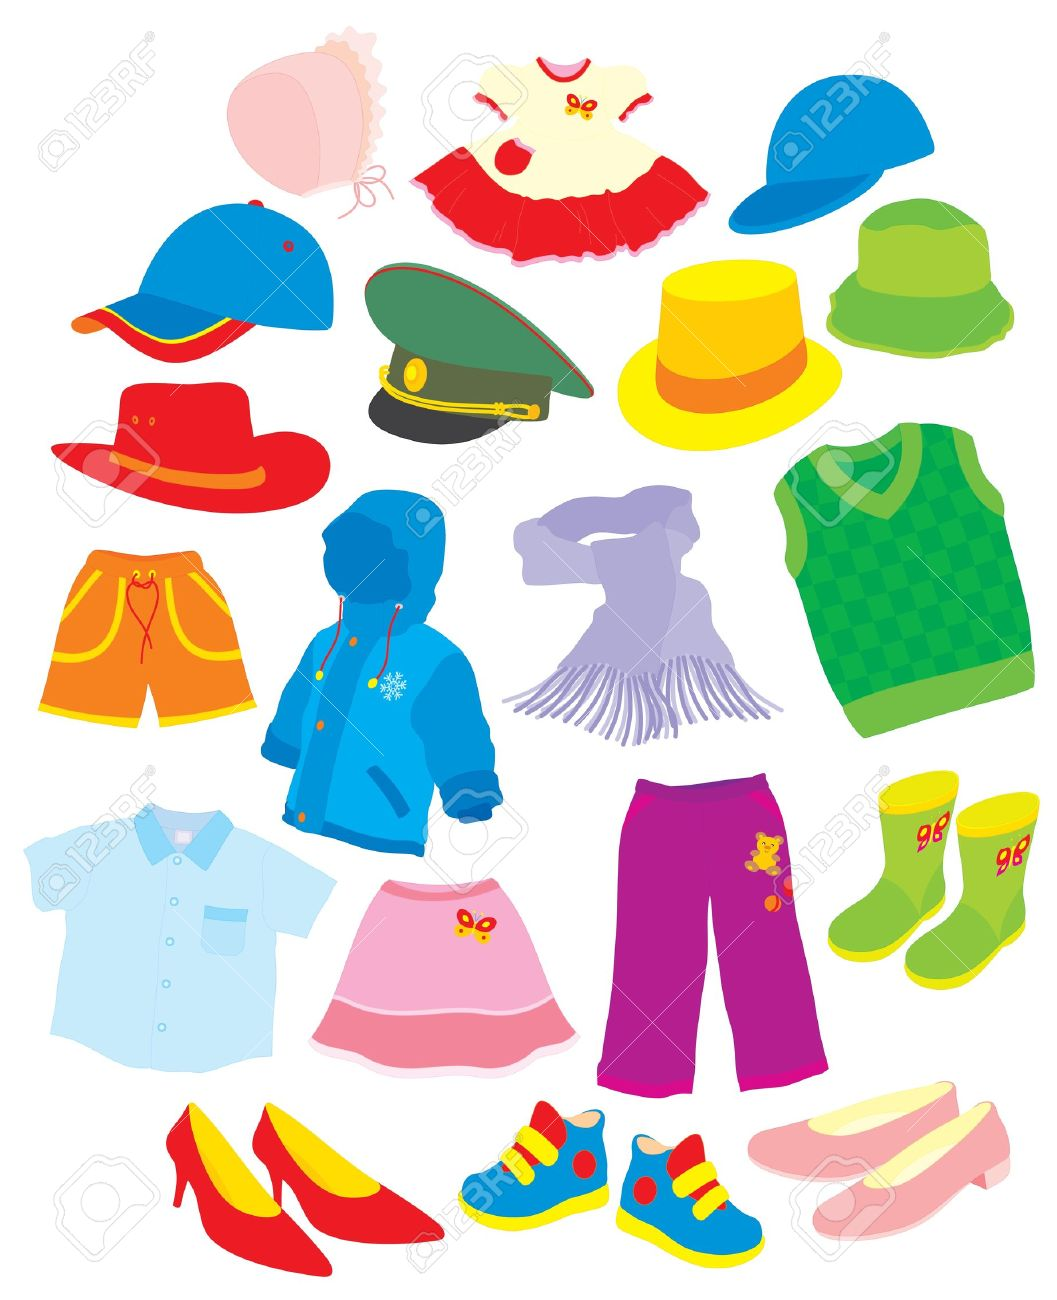 Putting On Clothes Clipart | Free download on ClipArtMag